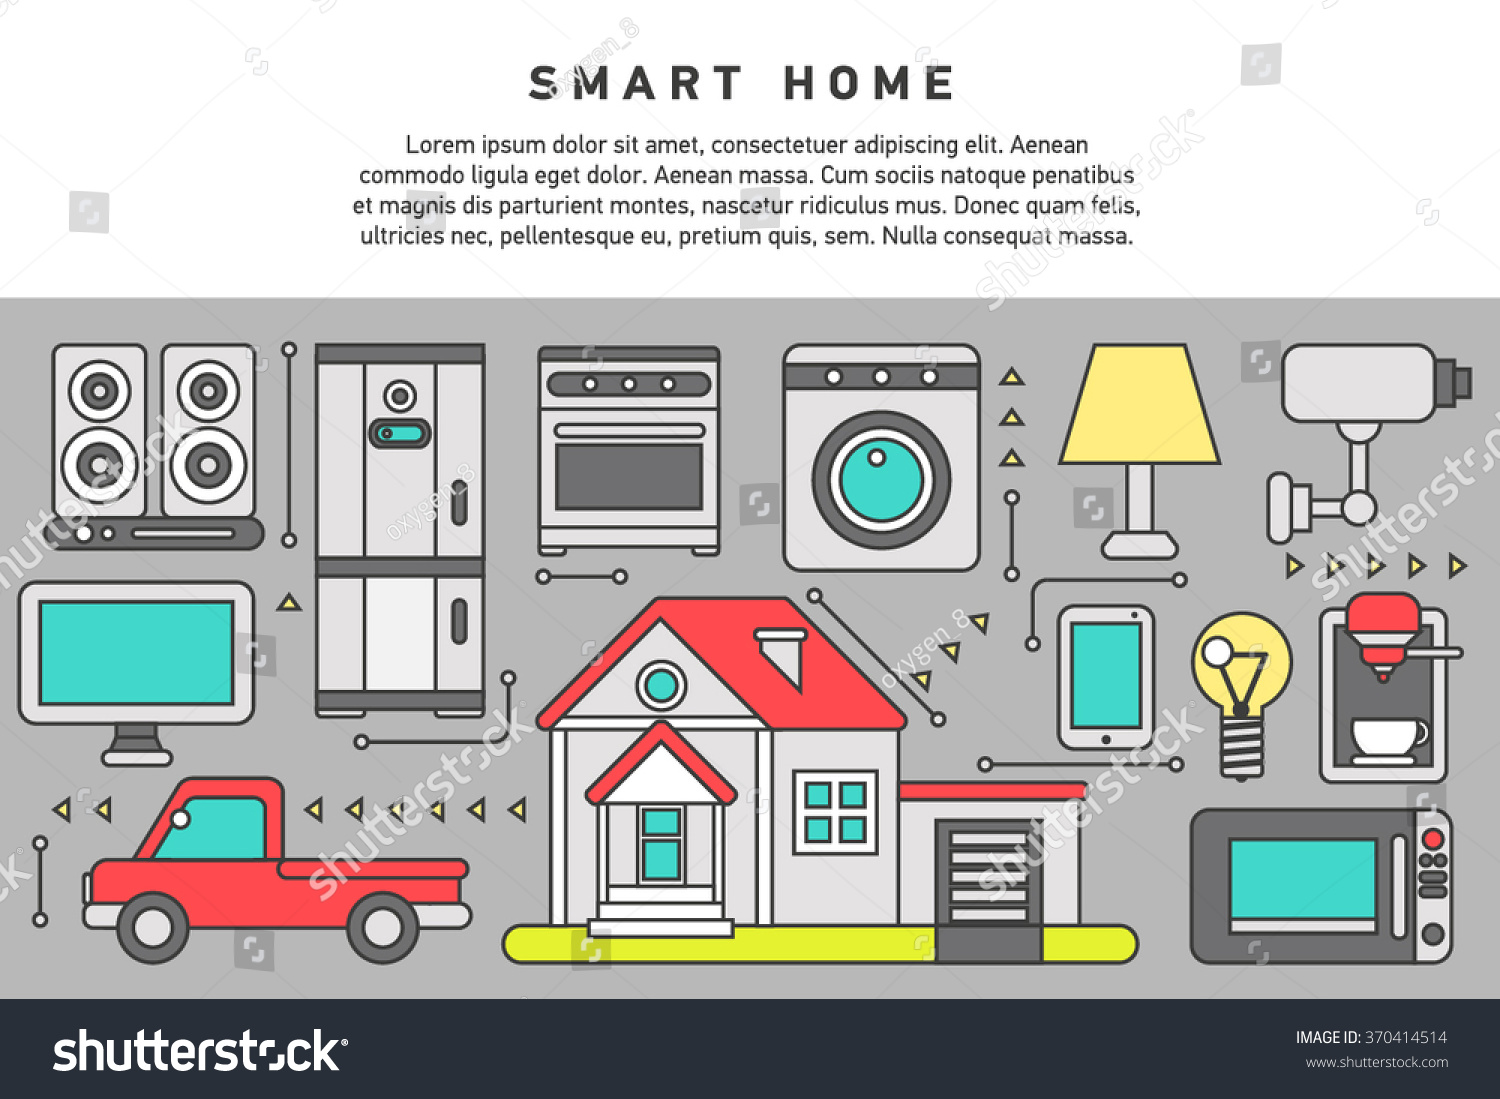 Smart Home Iot Internet Things Control Stock Vector 370414514